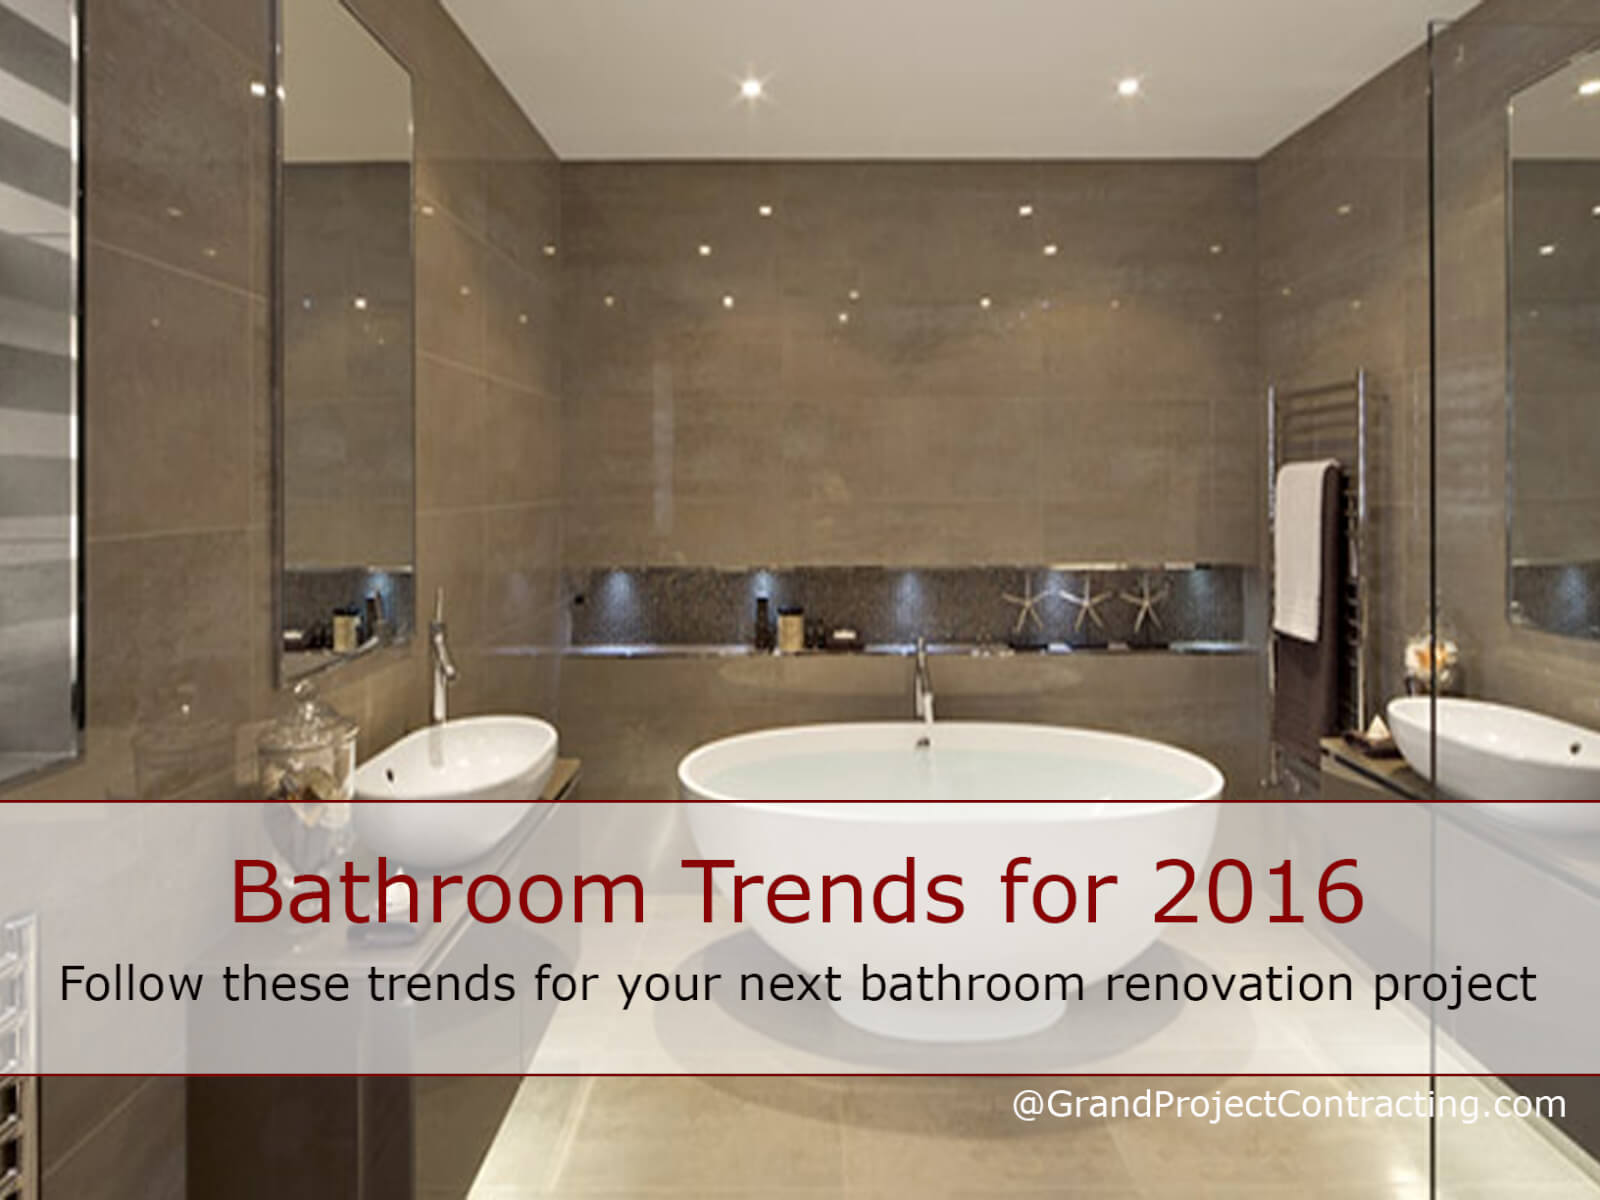 Bathroom trends for 2016 bathroom renovation contractor for Best bathroom design 2016